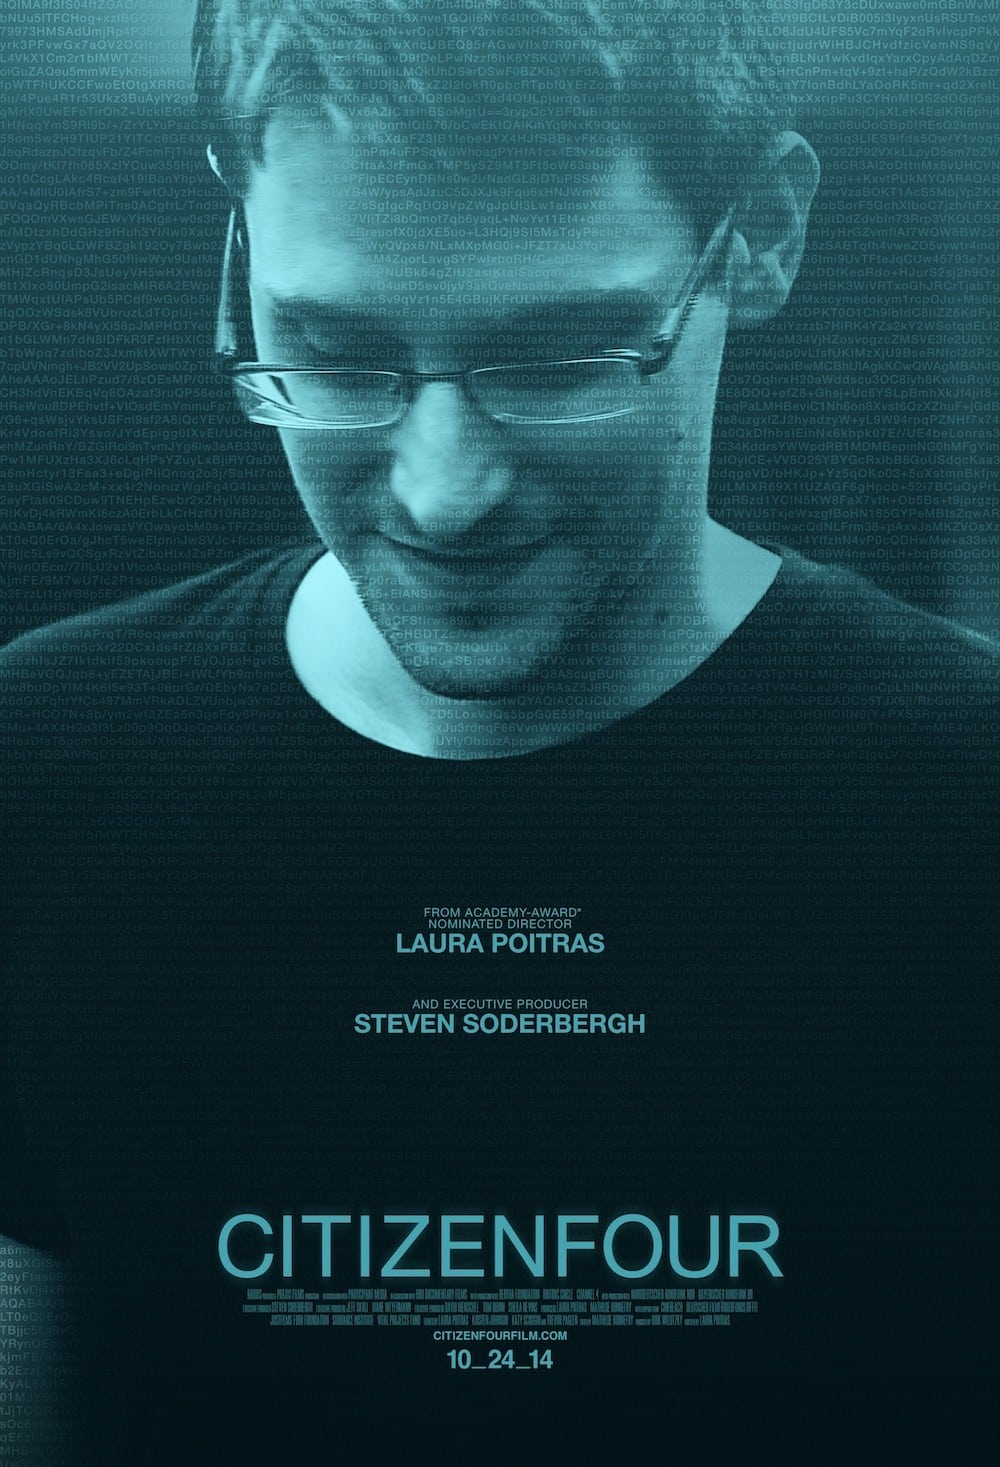 https://citizenfourfilm.com/see-the-film